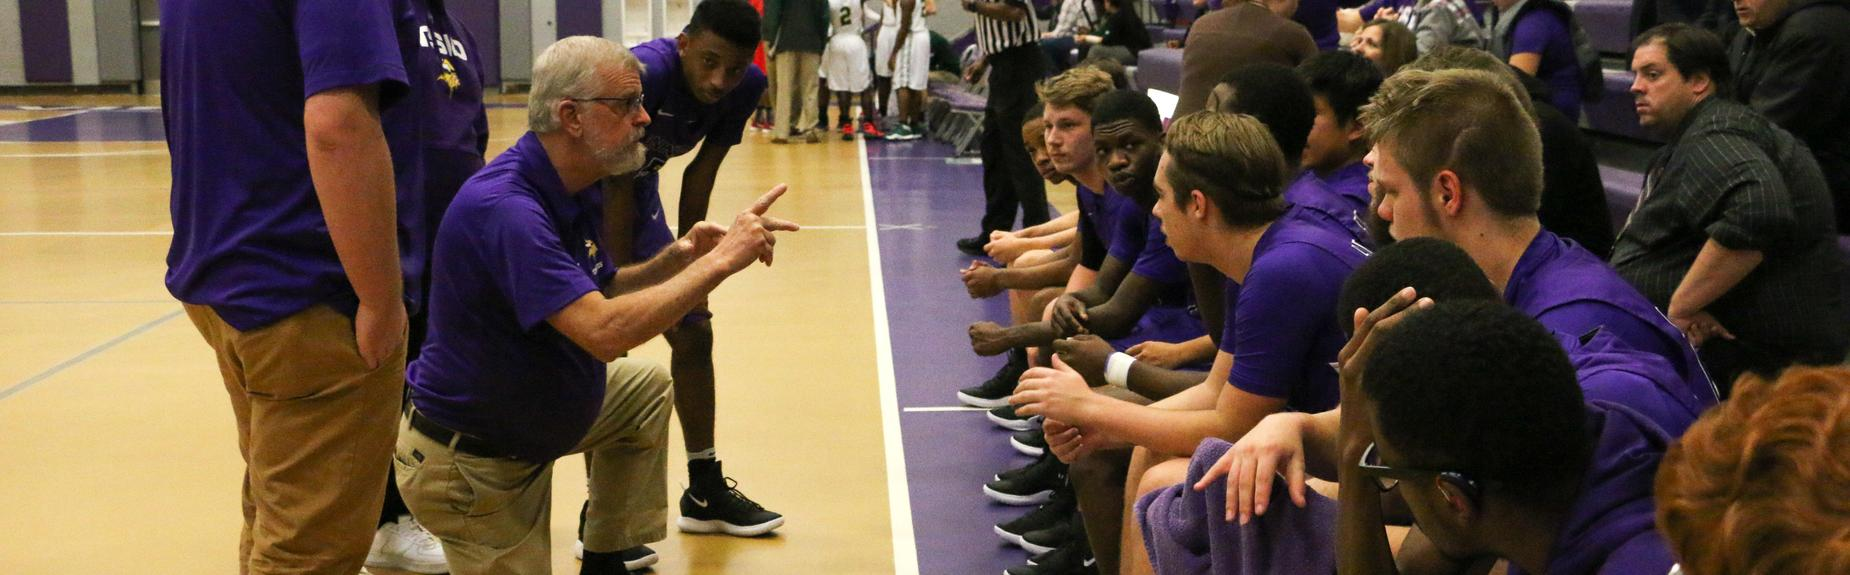 Boys's varsity basketball team during timeout to meeting w their coach in sign languages.